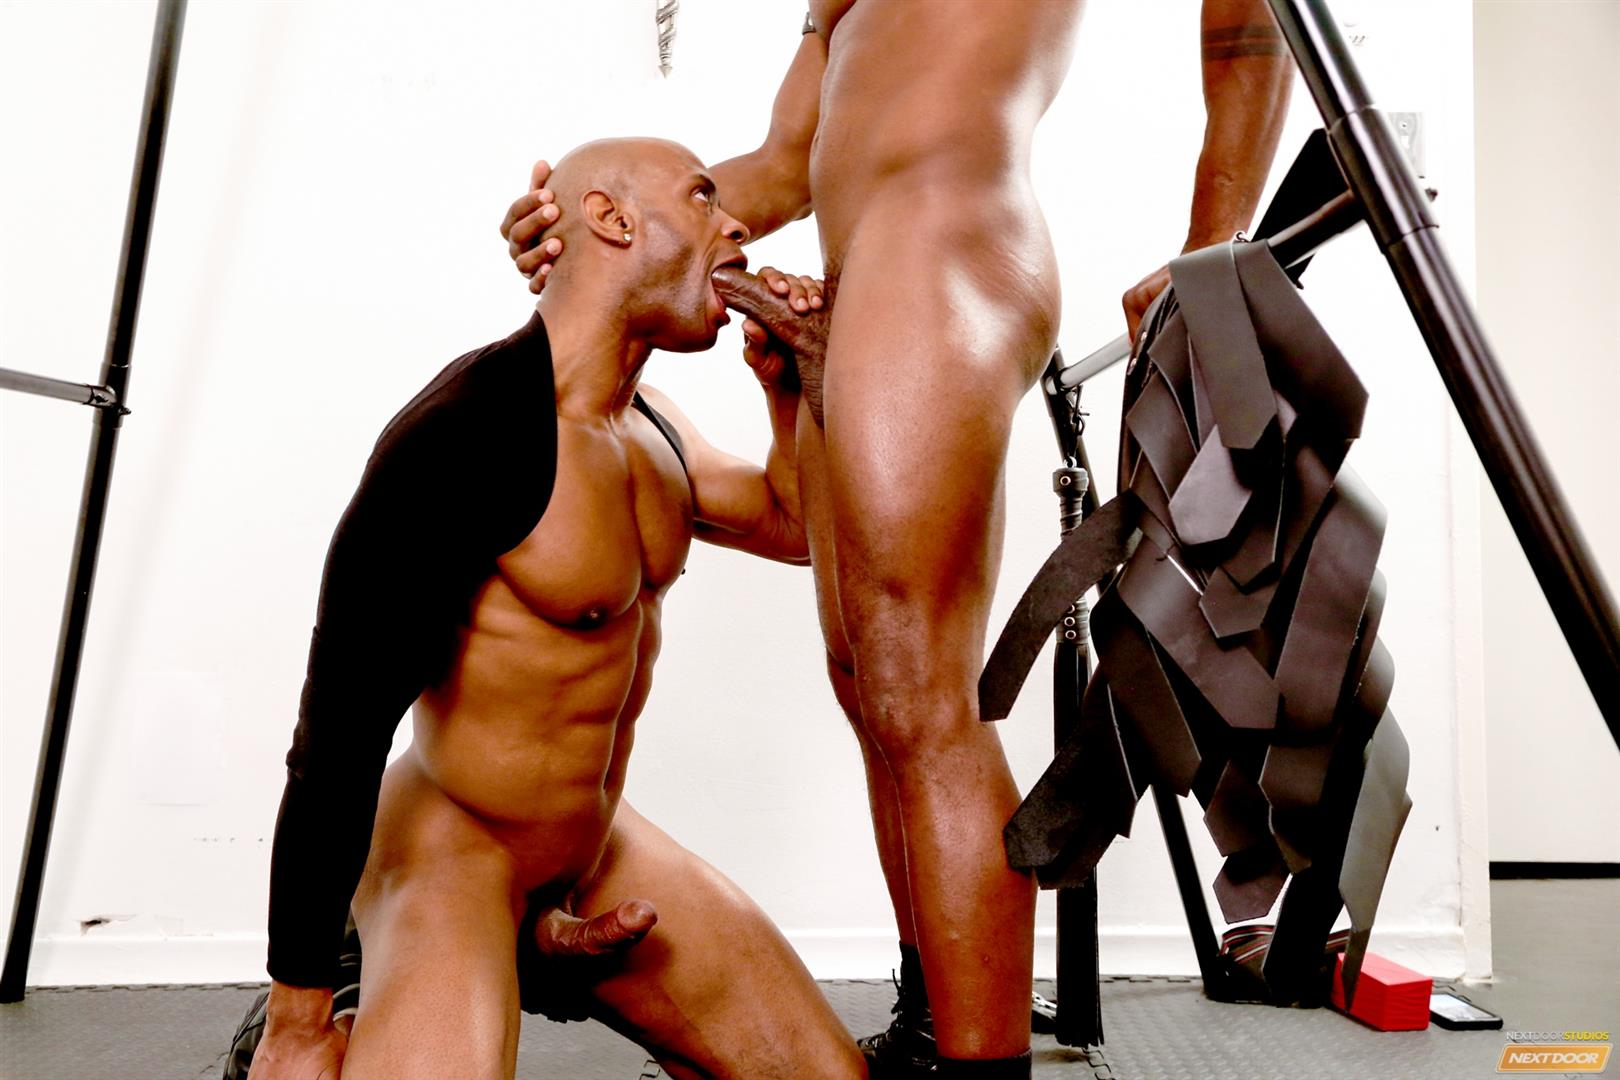 Marlone Starr and Osiris Blade Next Door Ebony Big Black Cocks Fucking Amateur Gay Porn 12 Osiris Blade Takes Marlone Starrs Massive Horse Cock Up The Ass